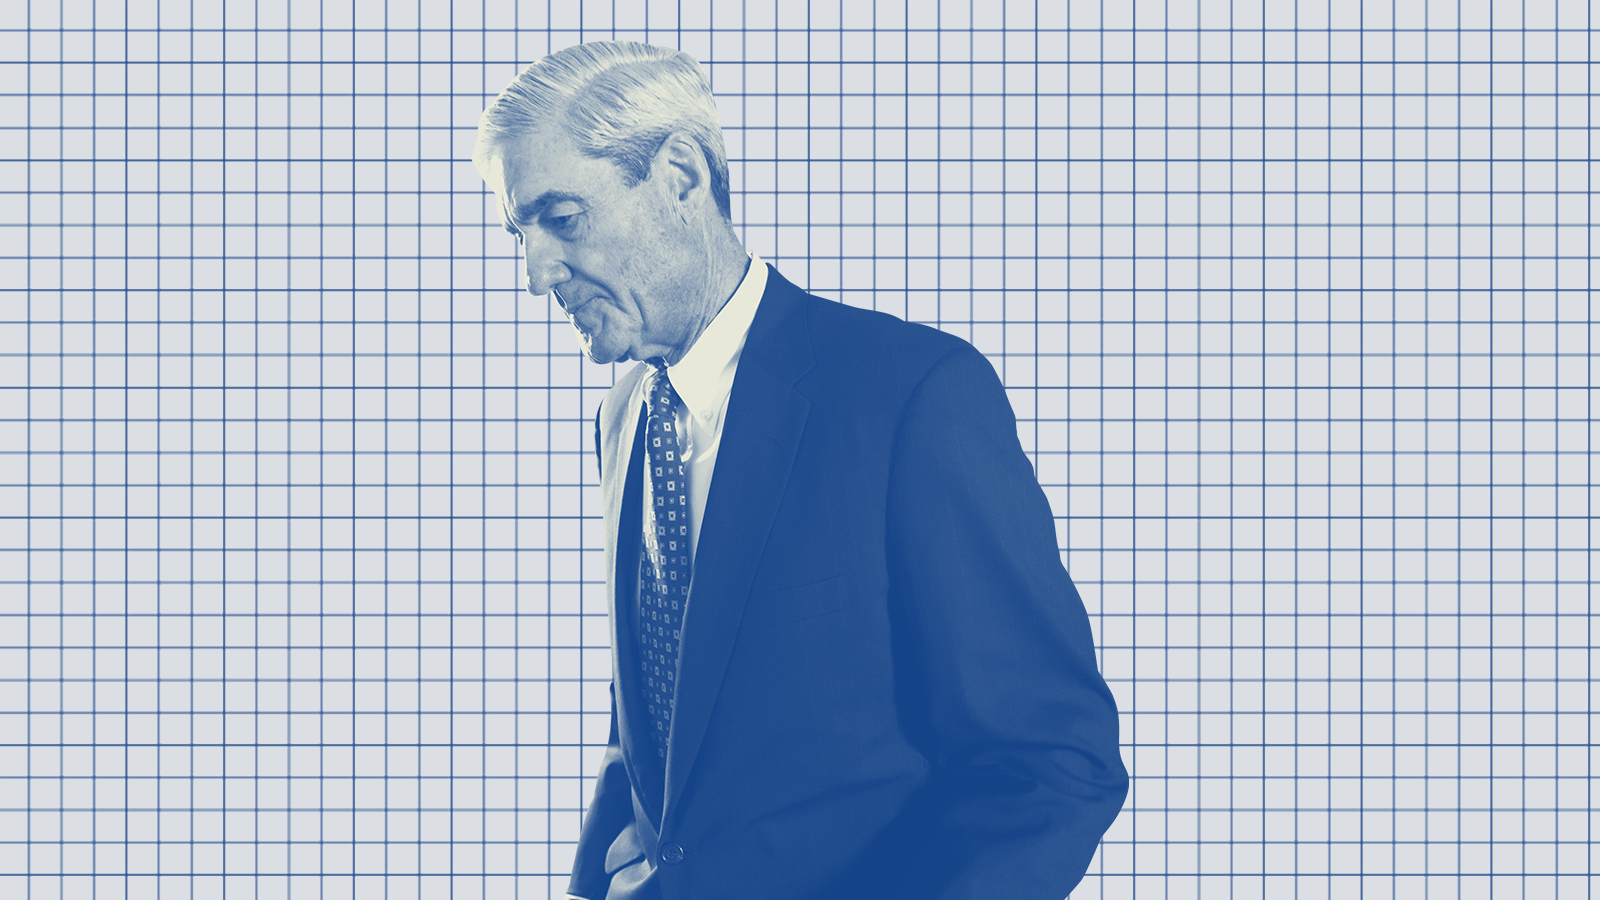 Trump's Approval Rating Is Down. Mueller's Is Up. Is There A Connection?